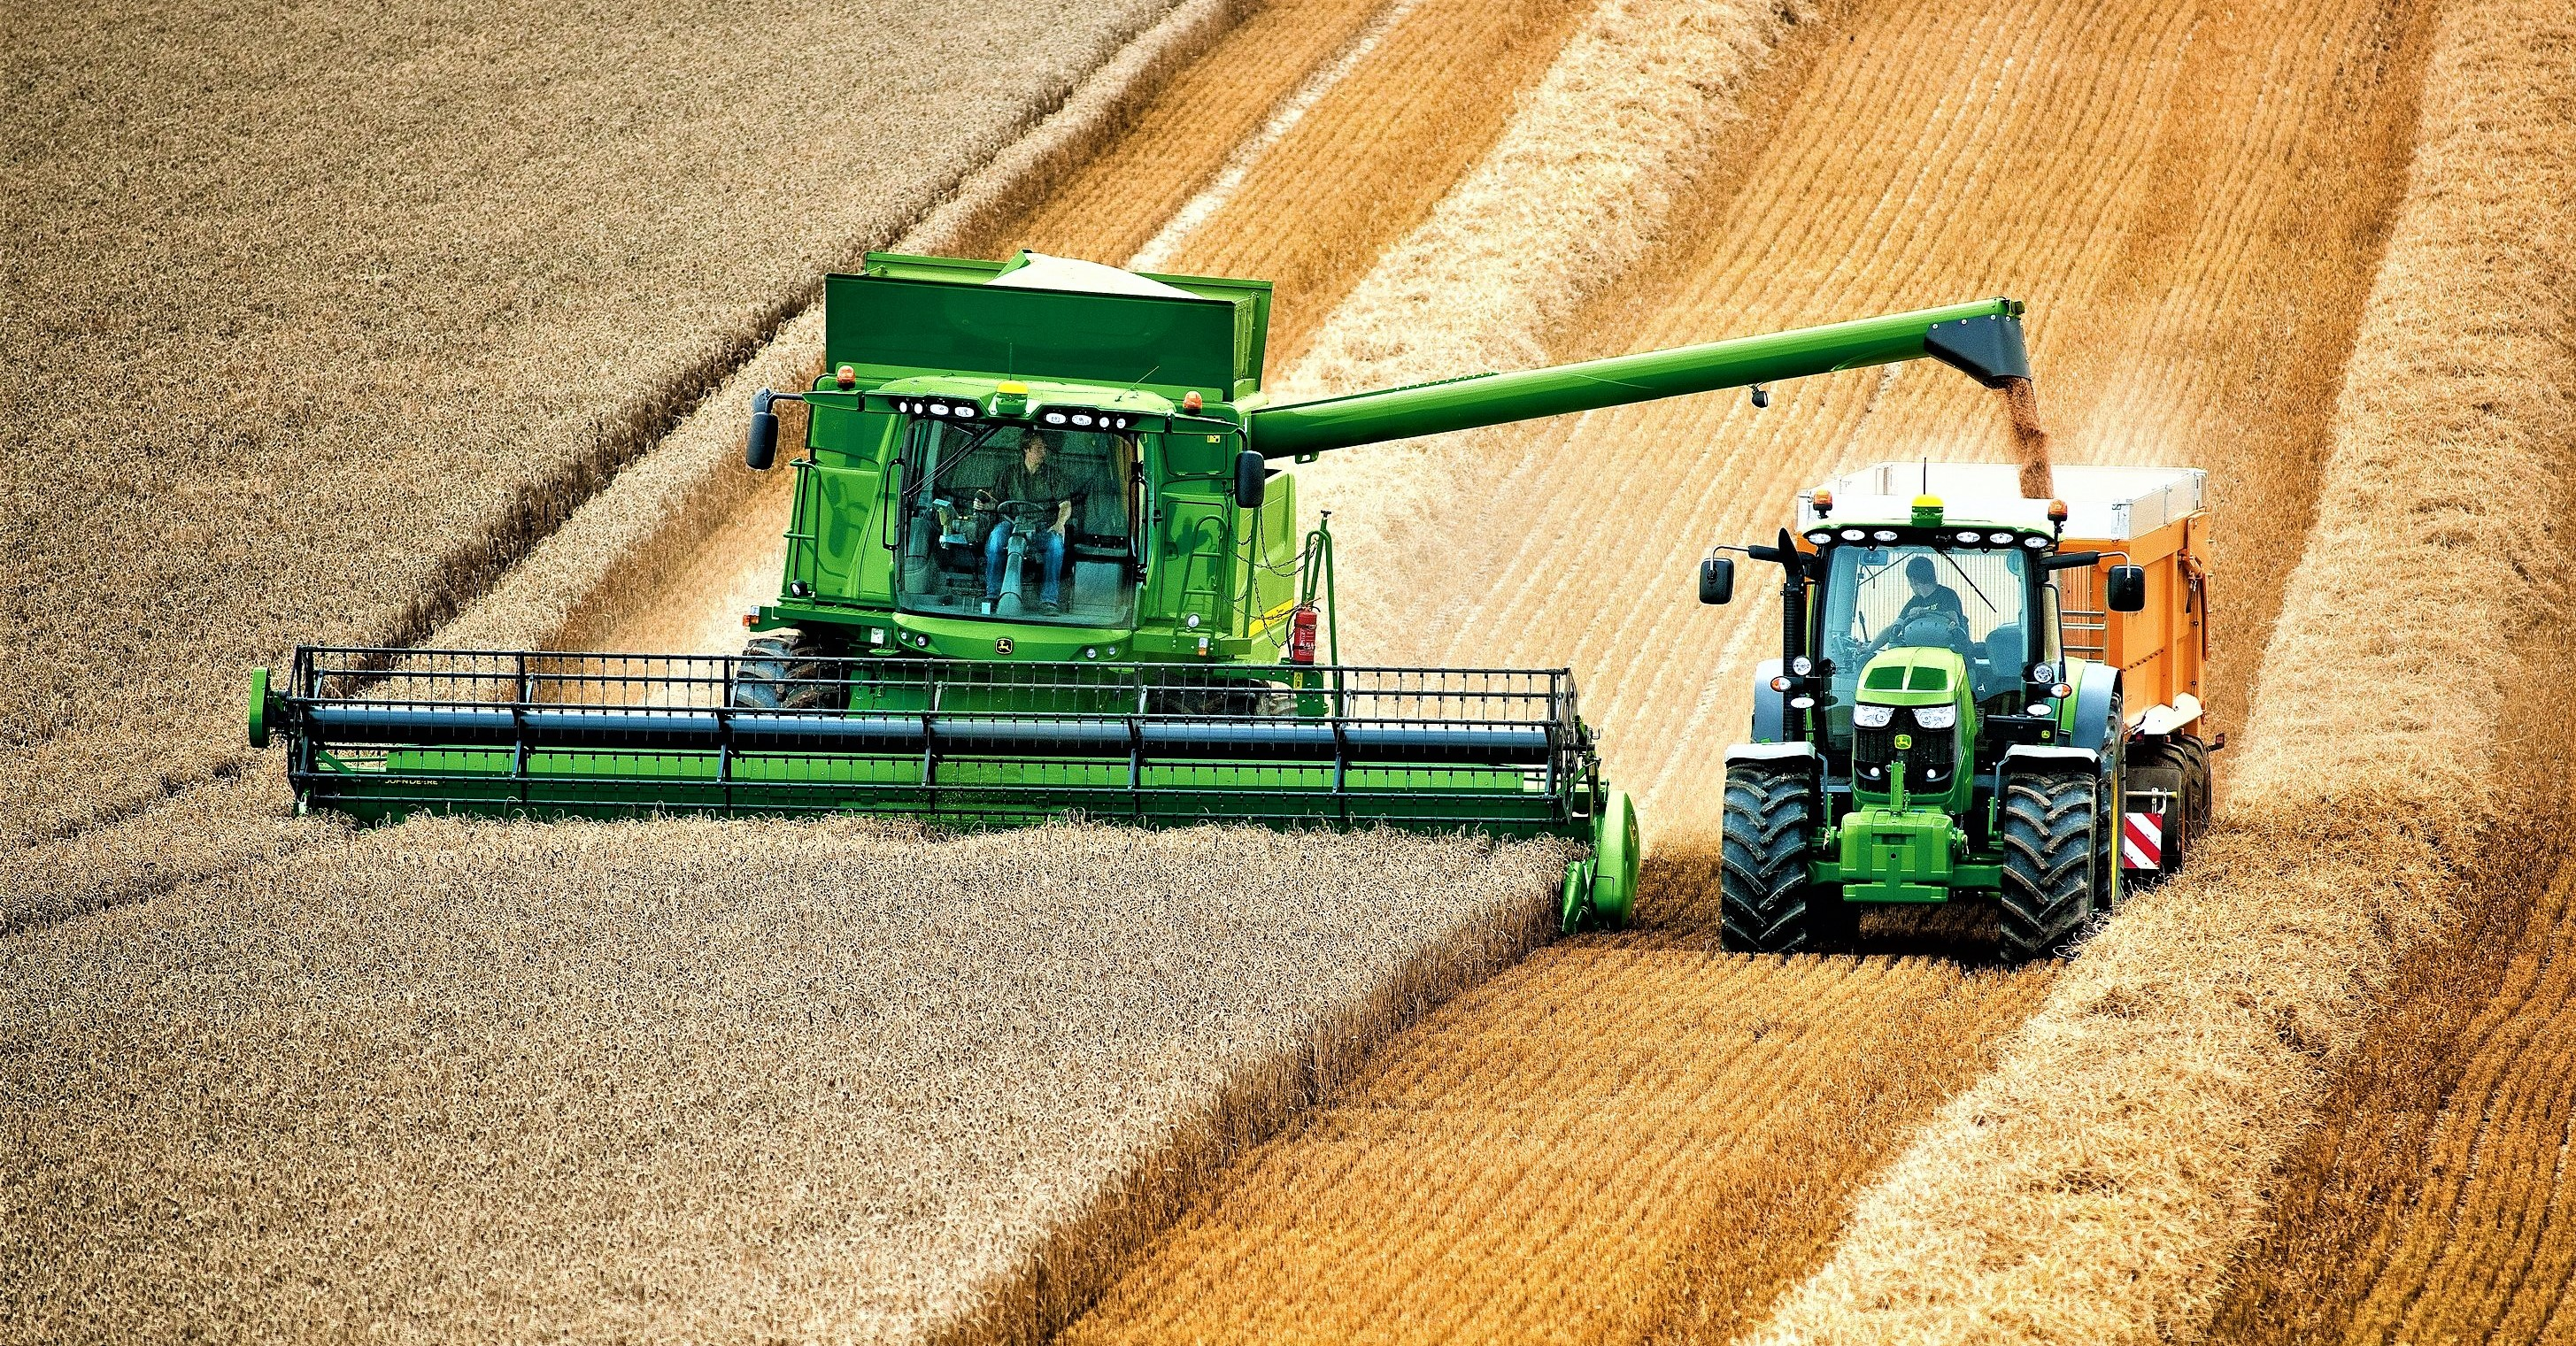 John Deere Combine >> New Deere S700 Can This Combine Do The Thinking For You